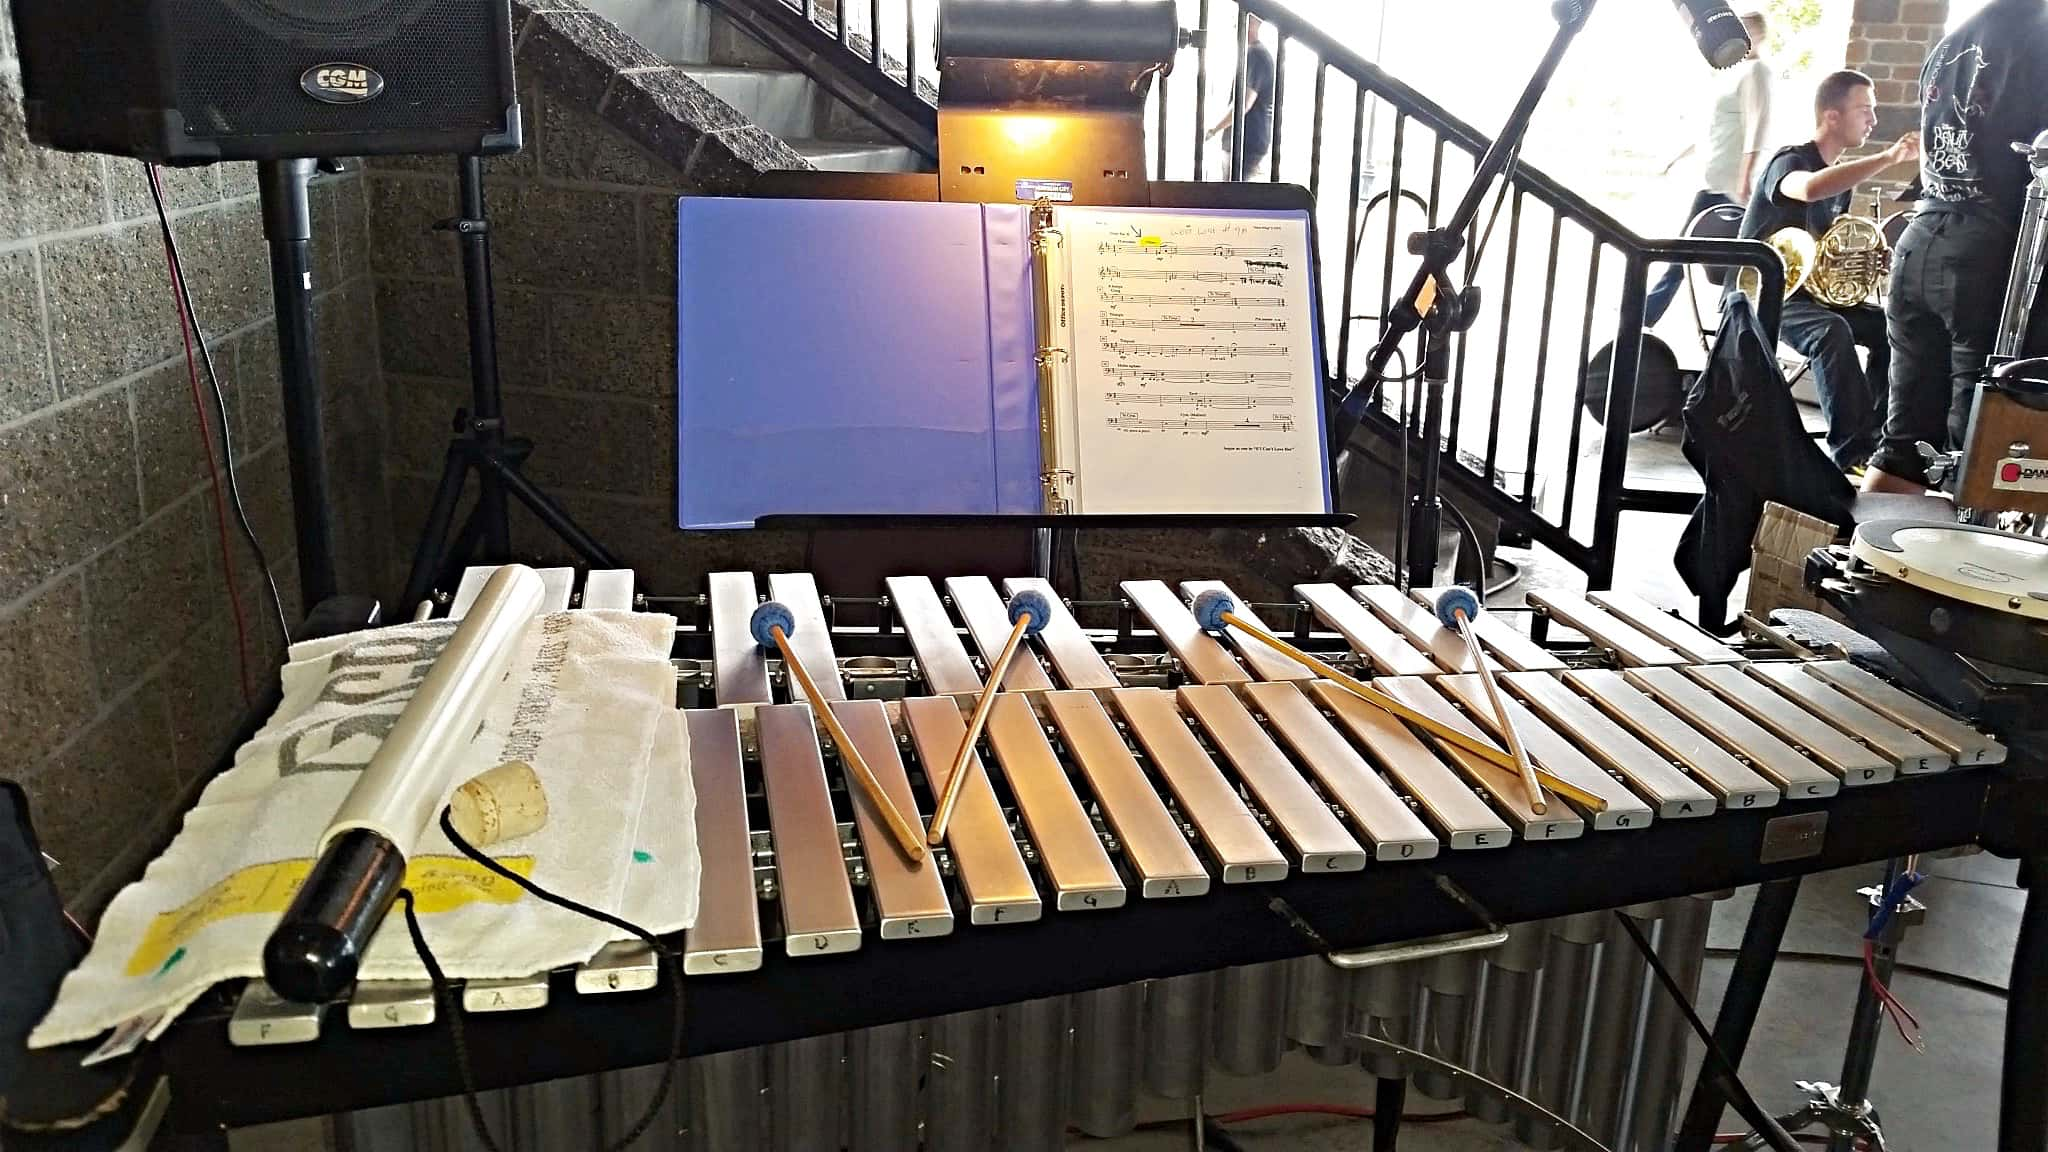 Angel Williams' percussion setup for the Herriman Arts Councils production of Beauty and the Beast in Herriman, Utah.